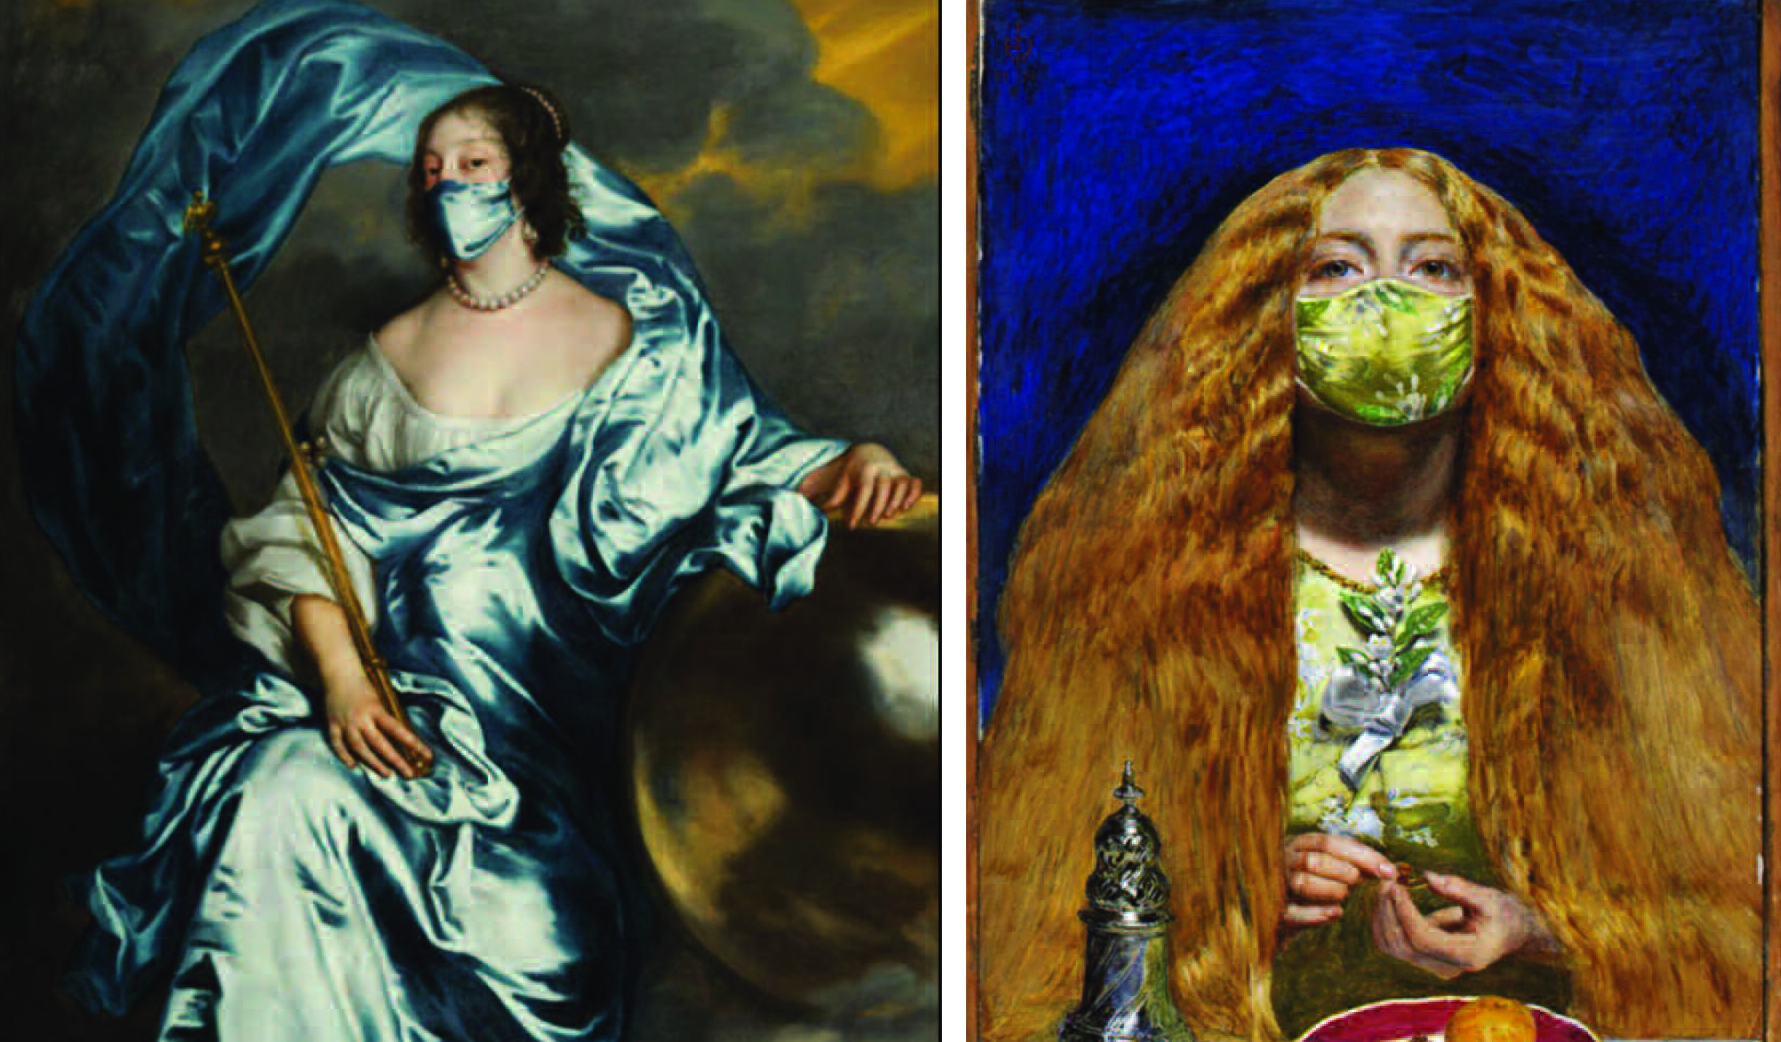 Above: Modern updates of The Countess Rachel du Ruvigny of Southampton Anthony van Dyck (left) and pre-Raphaelite artist John Everett Millais' The Bridesmaid (1851) from The Fitzwilliam Museum's new Masterpieces card collection.